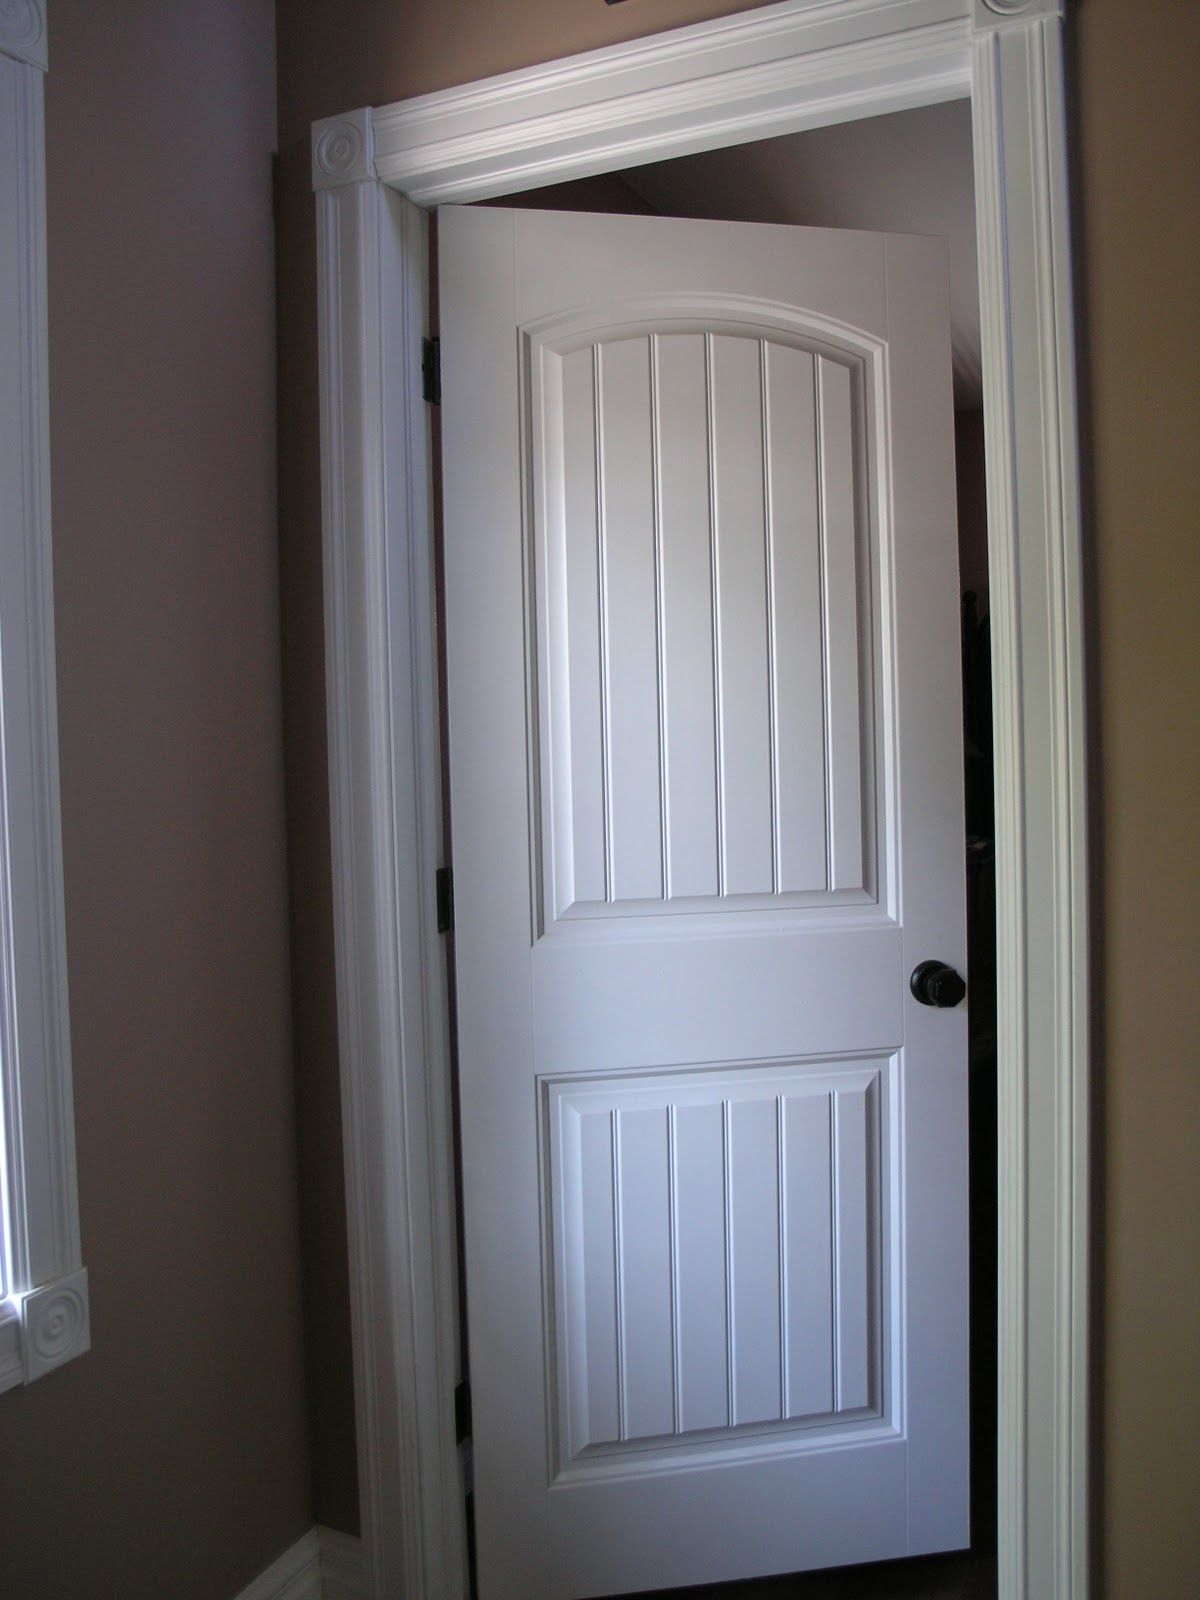 Interior doors are of the colonial style with emtek door handles interior doors are of the colonial style with emtek door handles description from homeforsaleliverpoolns eventelaan Choice Image